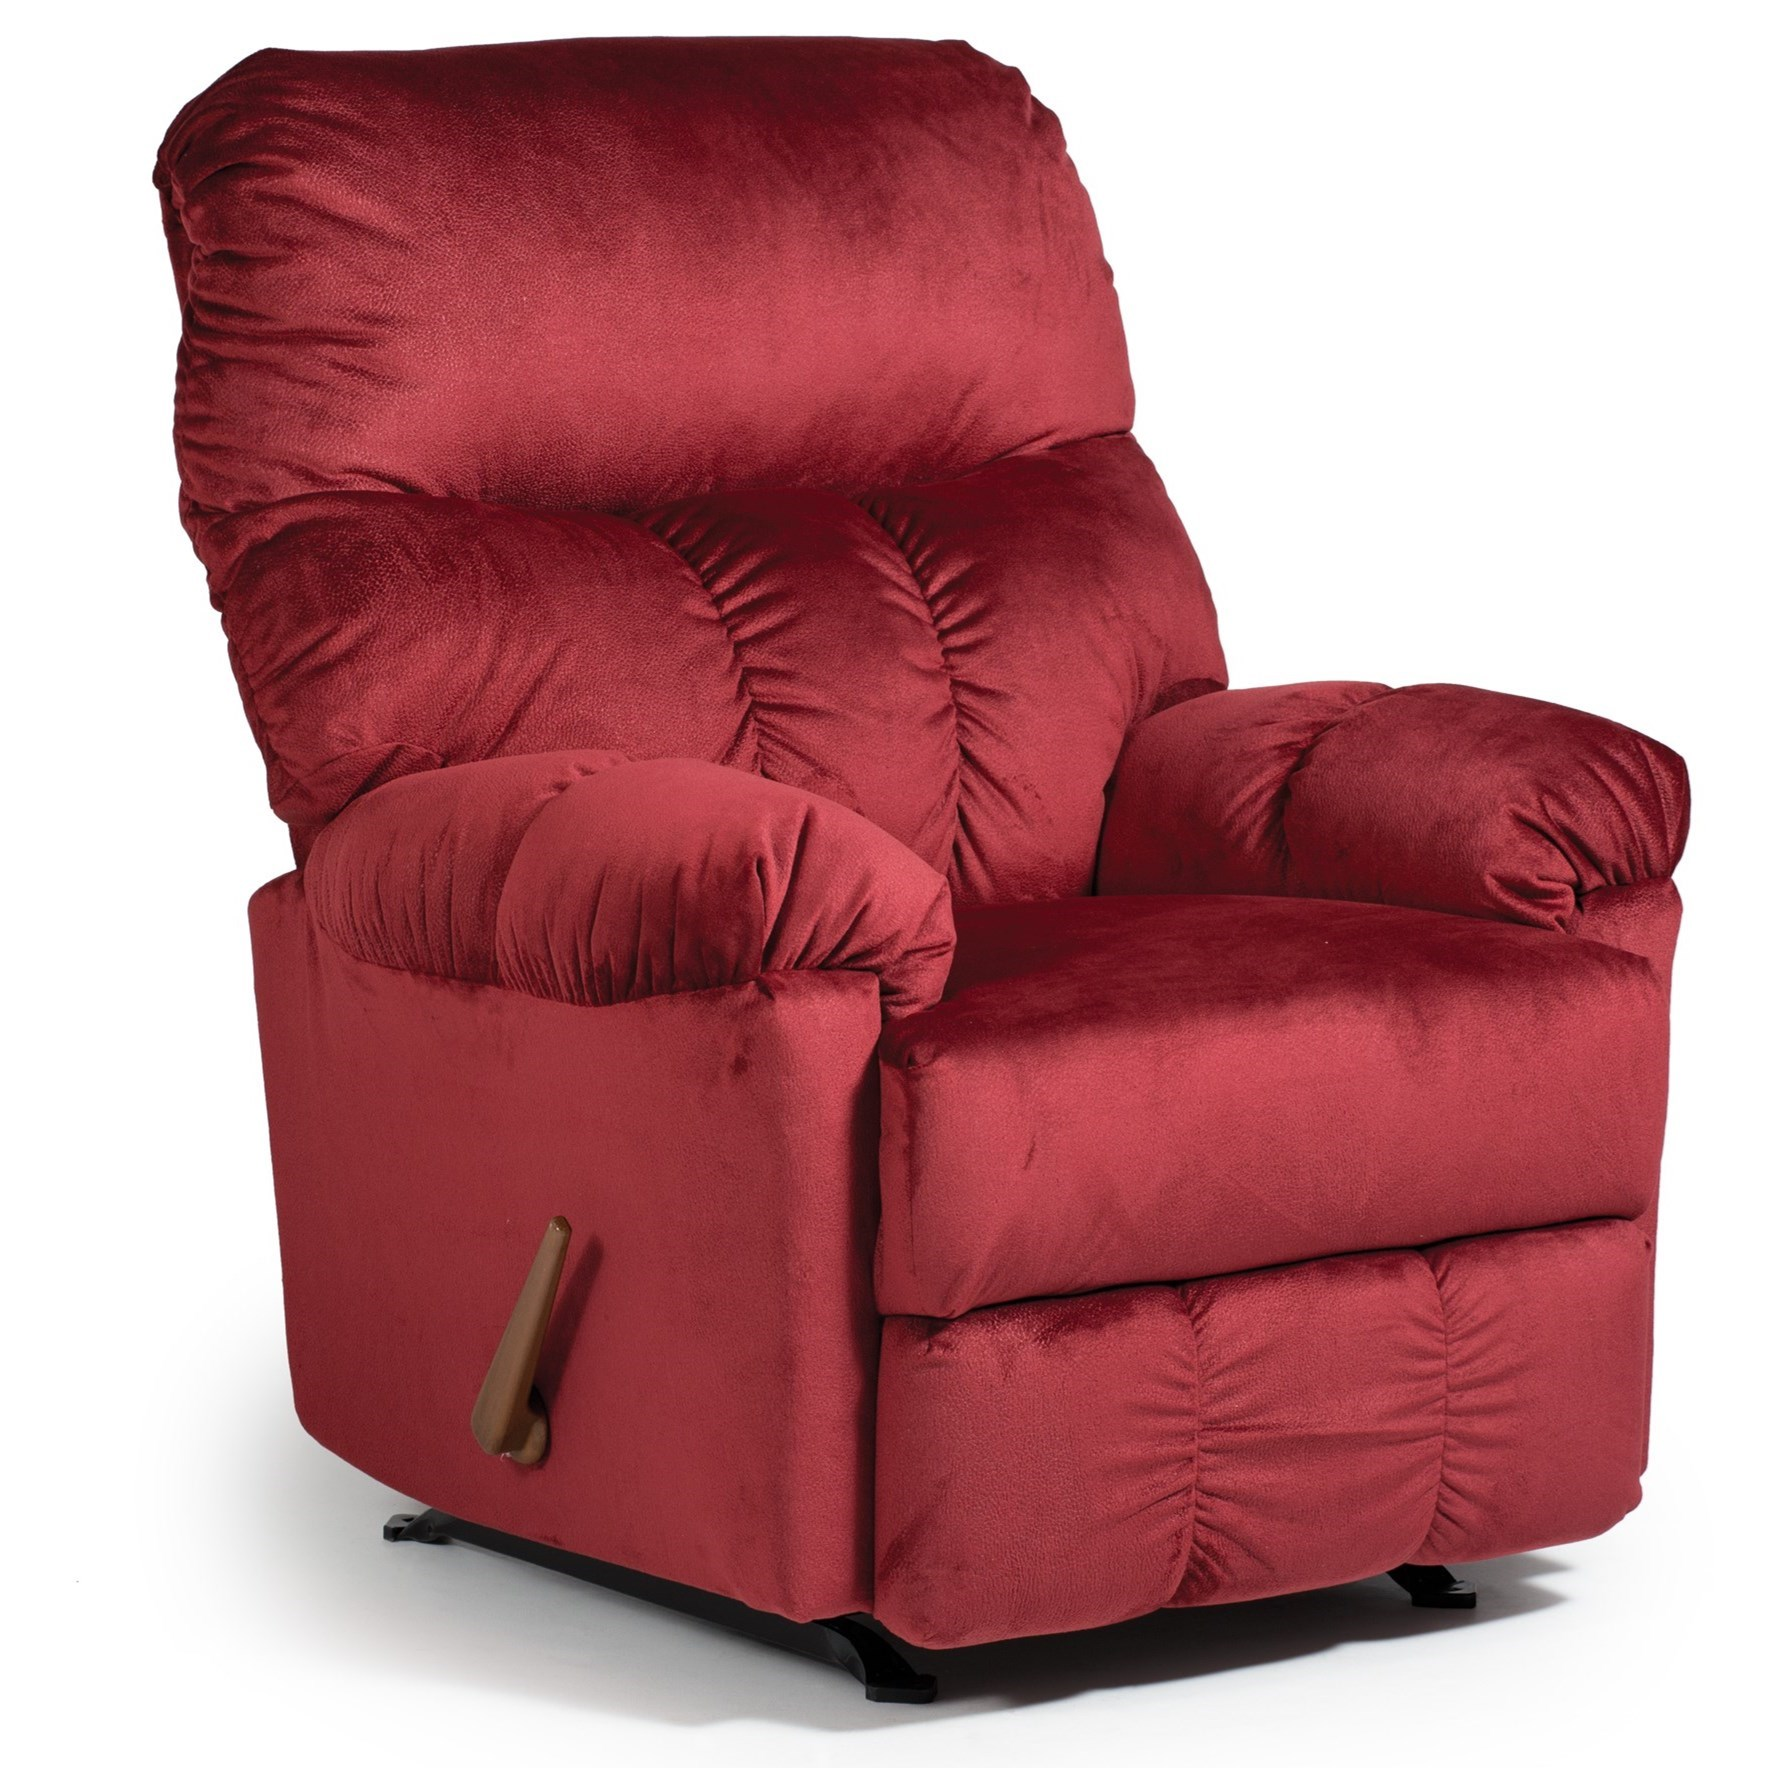 Best Home Furnishings Ares Ares Power Rocker Recliner - Item Number: 2MP37-1-21238